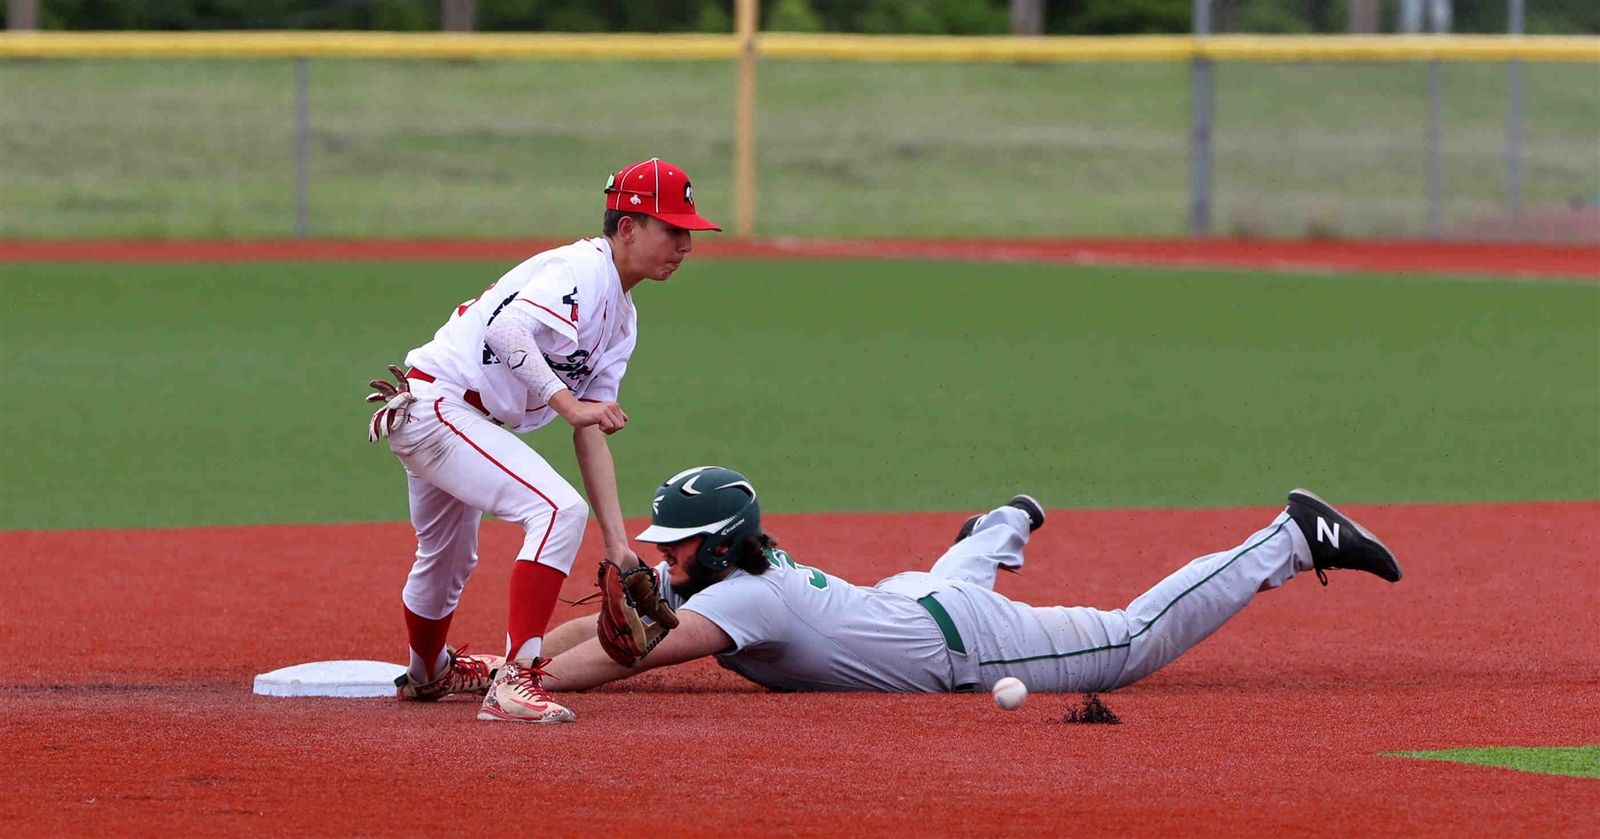 Lake Shore's Nick Wilson slides into 2nd as Iroquois' Tyler Birdd waits for the ball  in the 5th inning of the Class A2 baseball final at Niagara Falls High School on Thursday, May 30, 2019.